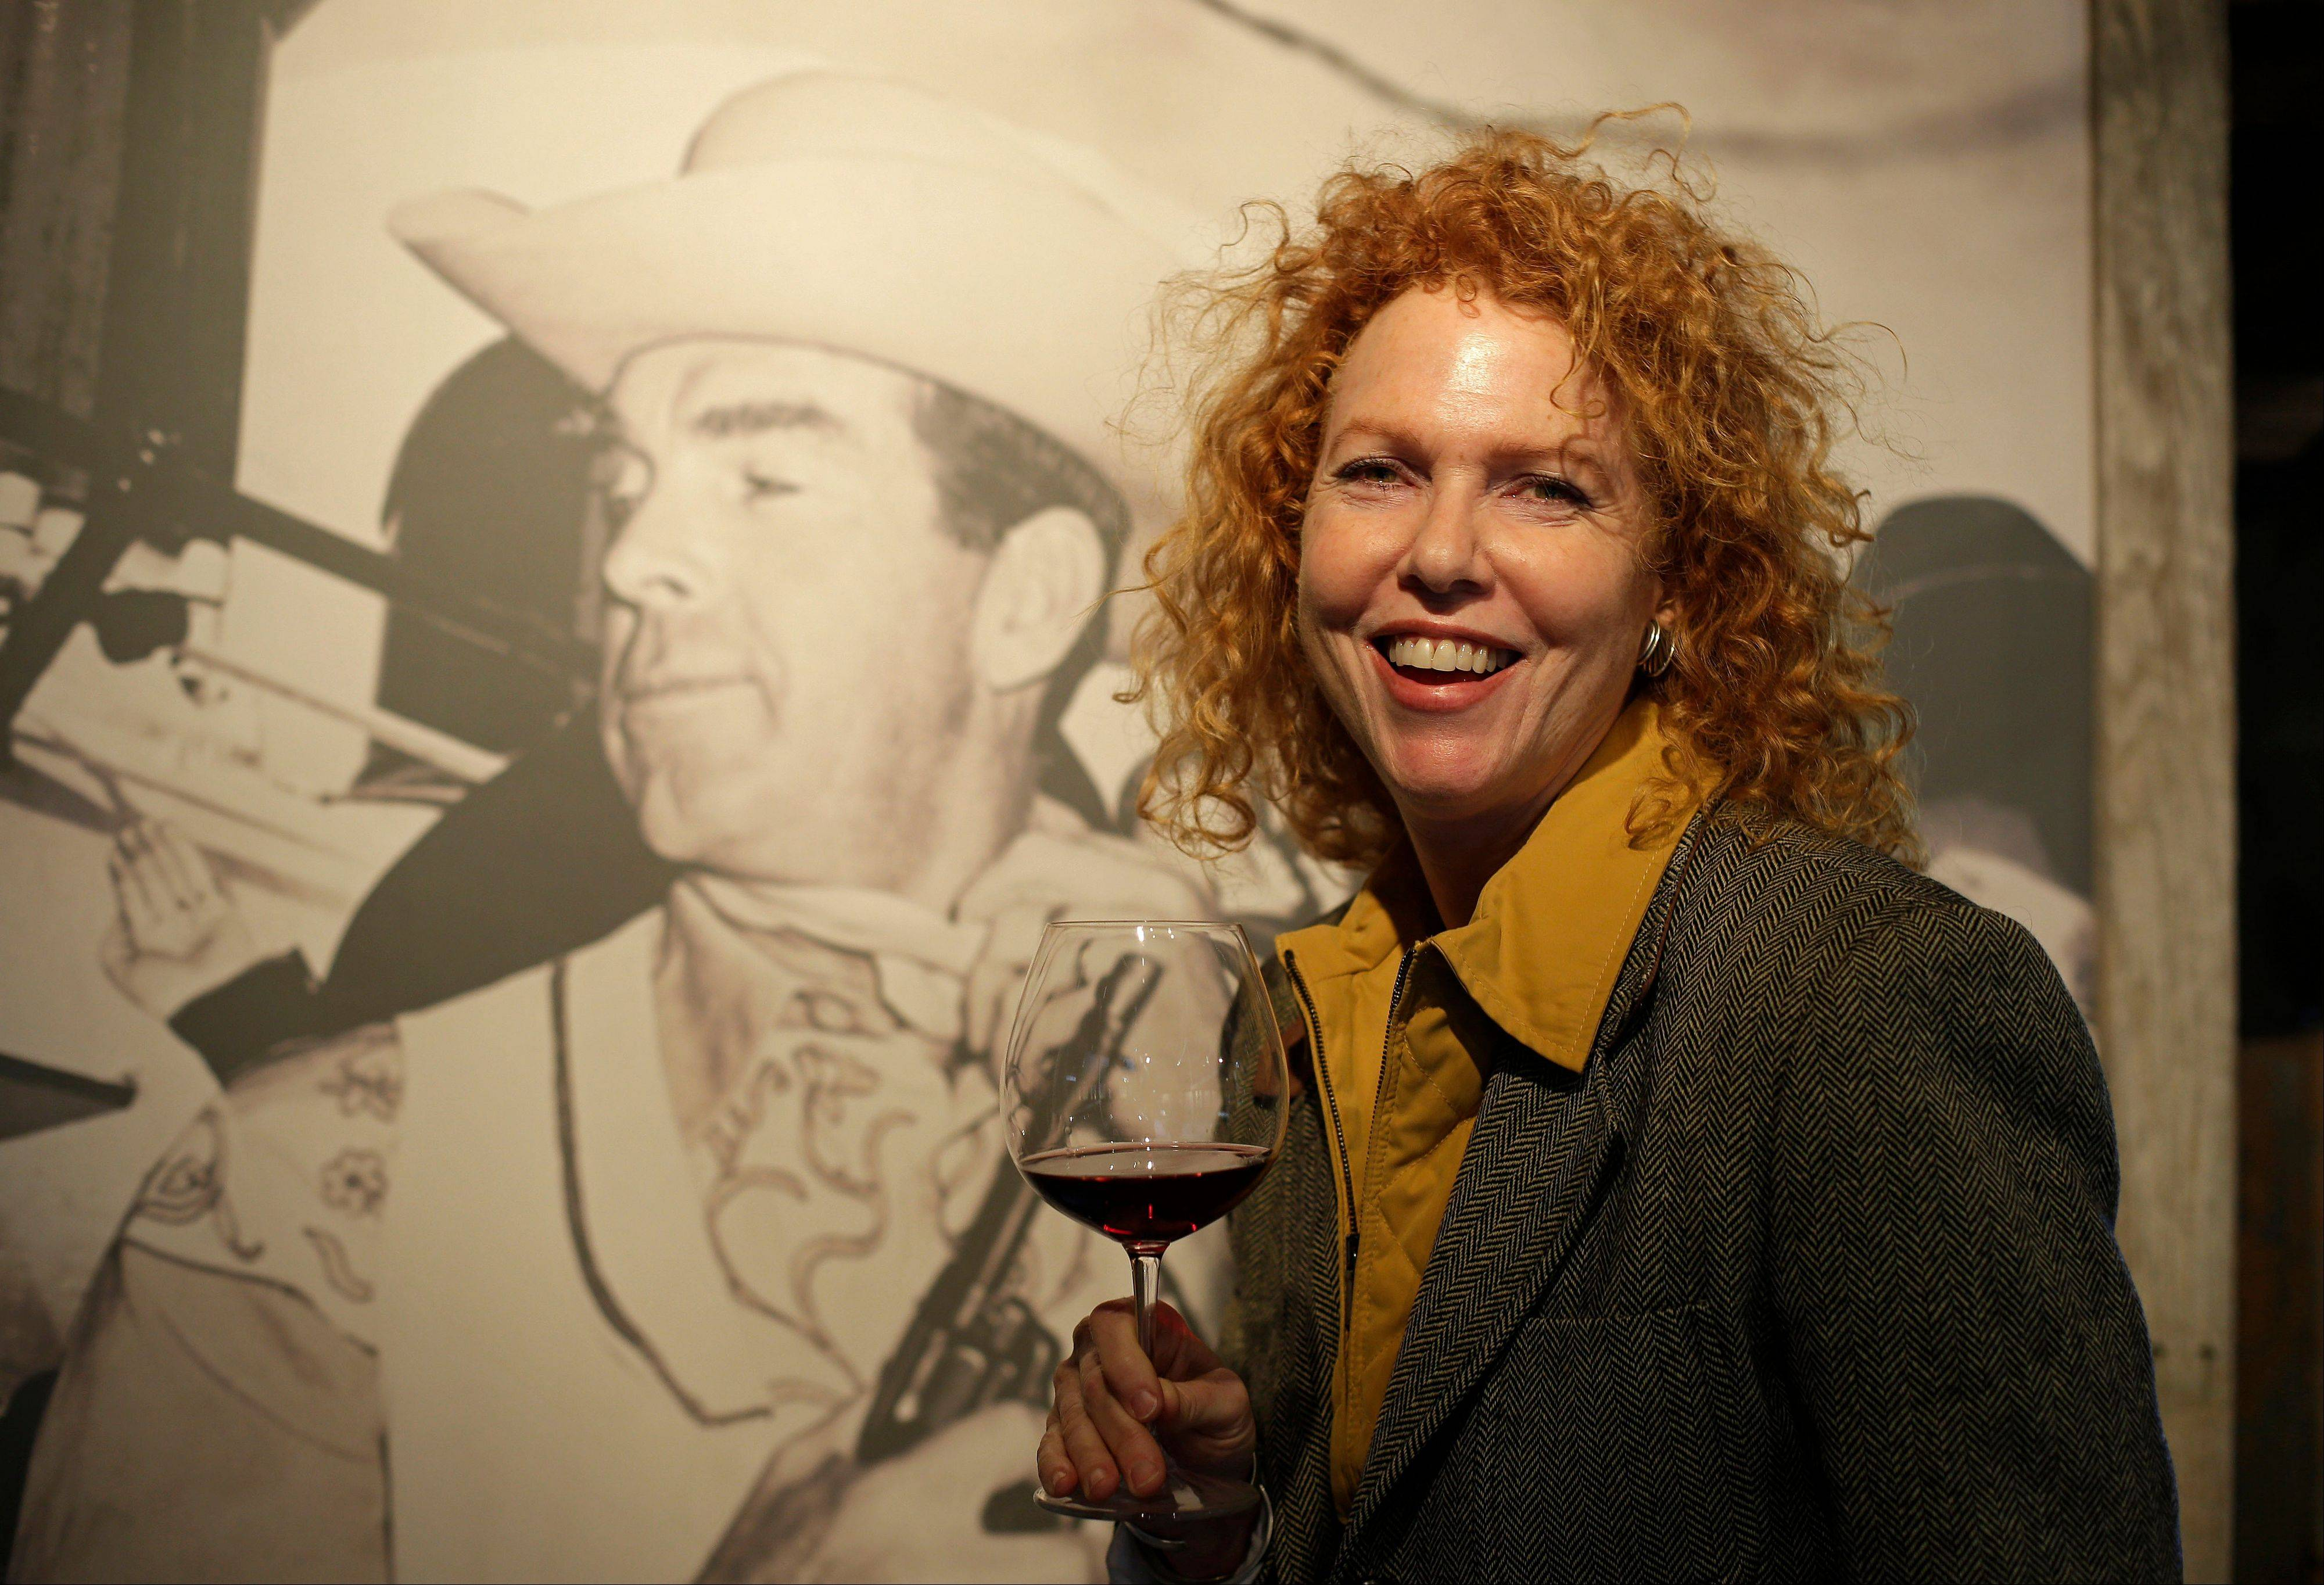 Kate MacMurray, daughter of the late actor Fred MacMurray, in a tasting area and gallery of old photographs at the MacMurray Ranch in Healdsburg, Calif. The former cattle ranch now produces wine and is owned by the Gallo wine family.